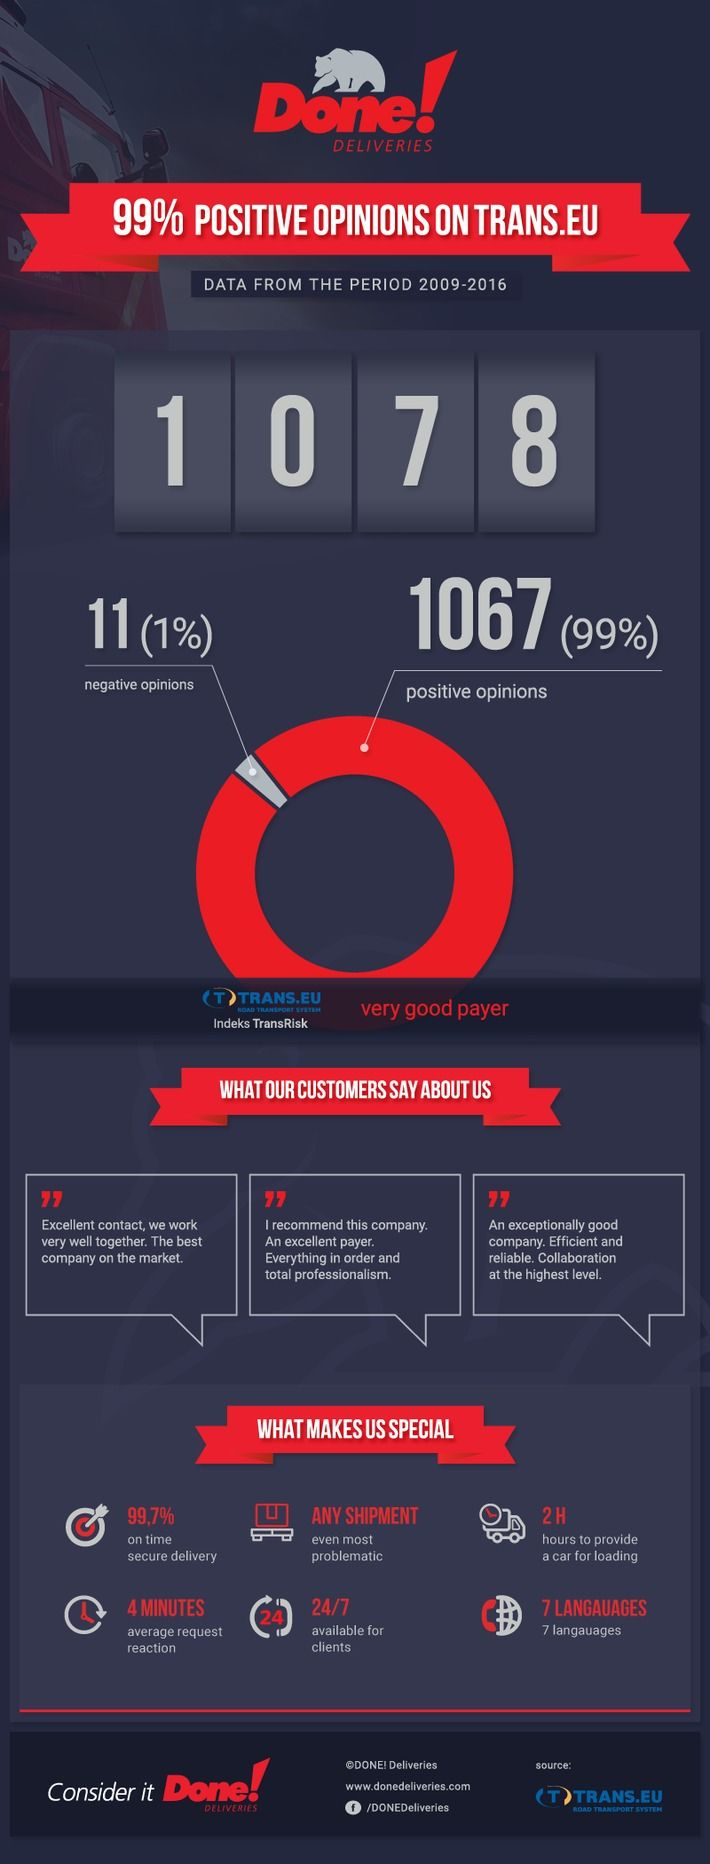 99% POSITIVE OPINIONS ON TRANS.EU  We began working with TRANS.EU transport exchange 7 years ago. We've had a lot of positive opinions in that time from our partners, which confirm our RELIABILITY WITH PAYMENTS. In the infographic below, we show a handful of statistics which show opinions about our company as a payer/ordering party in international contracts. Take a look.